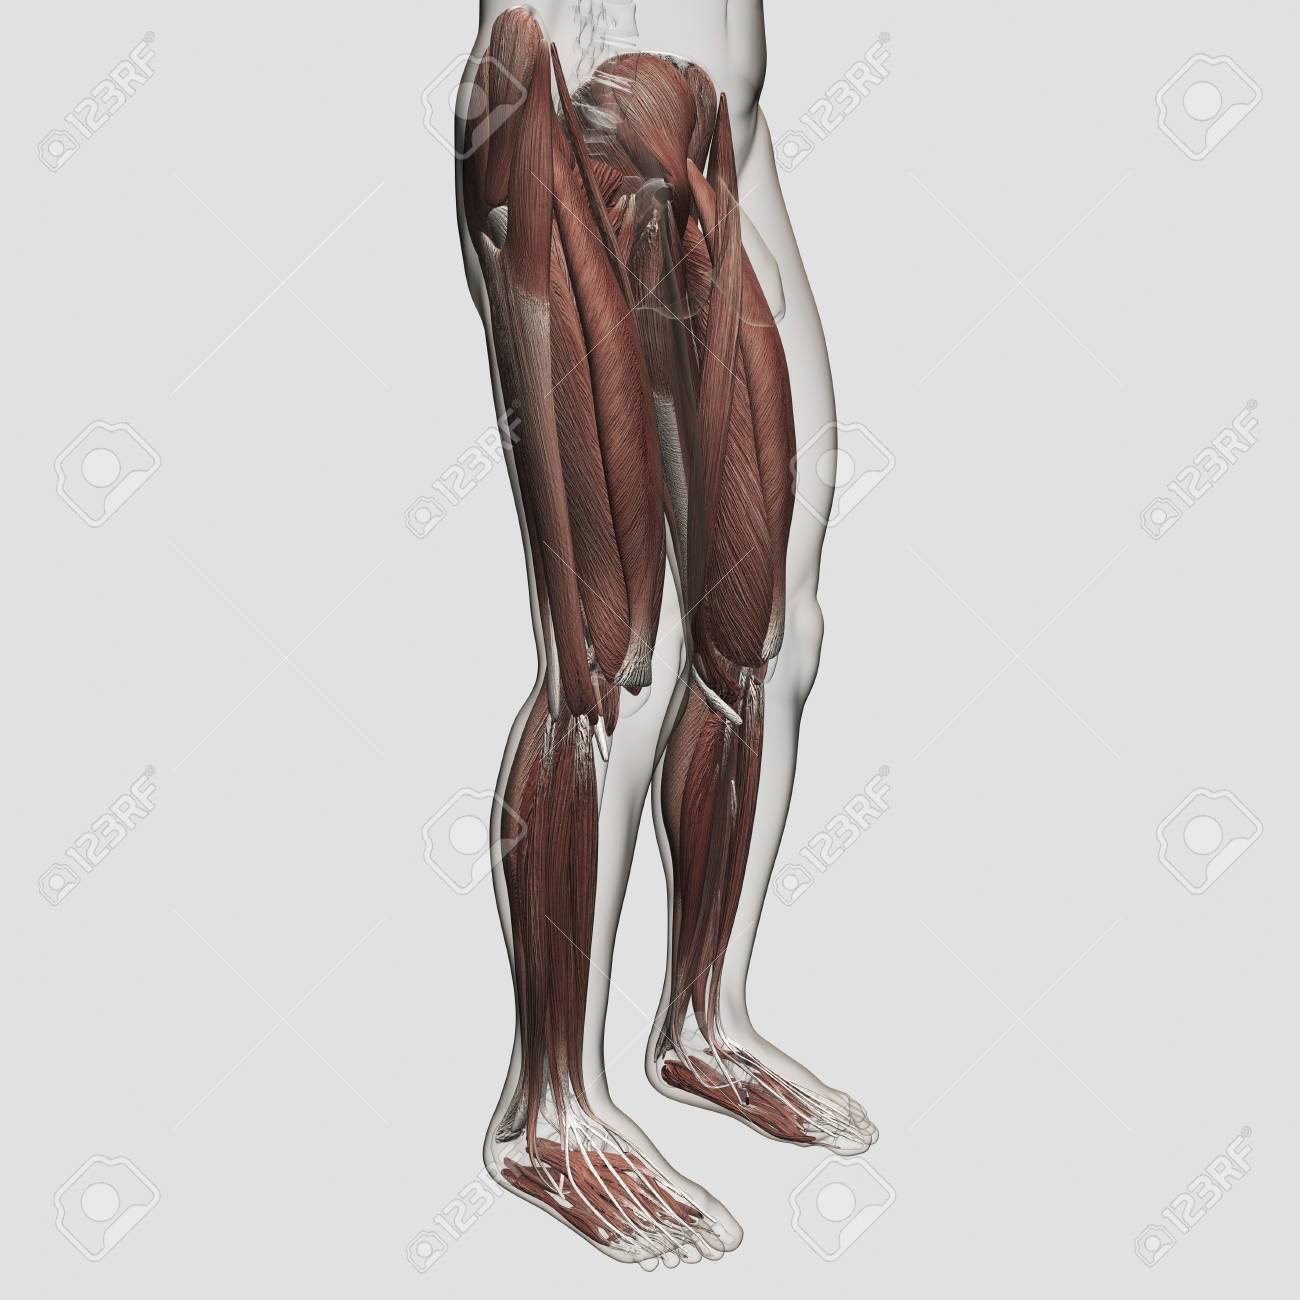 Male Muscle Anatomy Of The Human Legs, Anterior View. Stock Photo ...